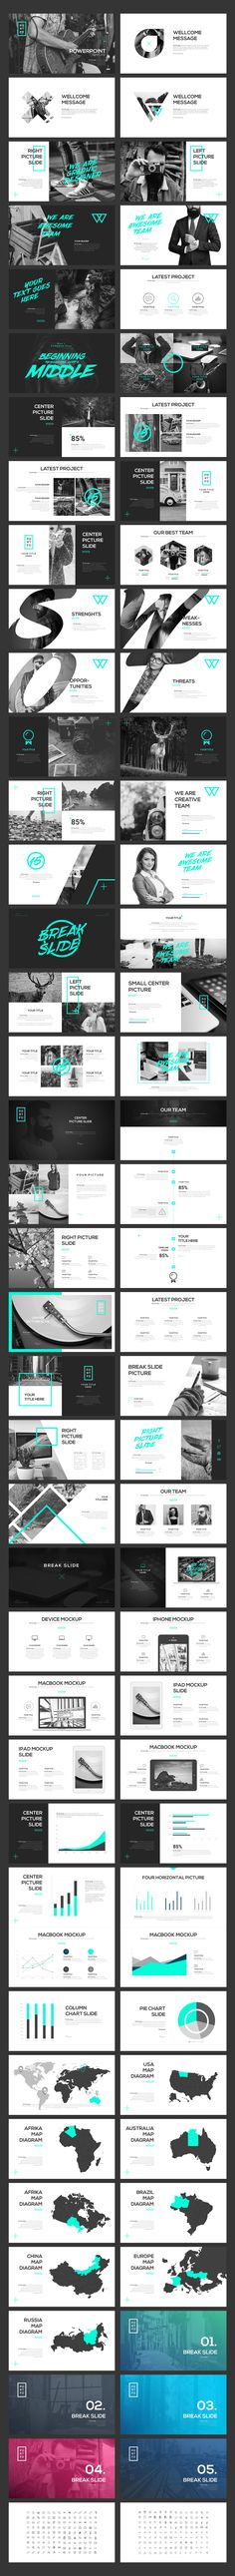 PowerPoint Template ~ PowerPoint Templates ~ Creative MarketPORTFO PowerPoint Template ~ PowerPoint Templates ~ Creative Market Extreme Sports Promo - After Effects Project Files Web Design, Layout Design, Slide Design, Presentation Layout, Presentation Templates, Editorial Layout, Editorial Design, Logo Mode, Mise En Page Web